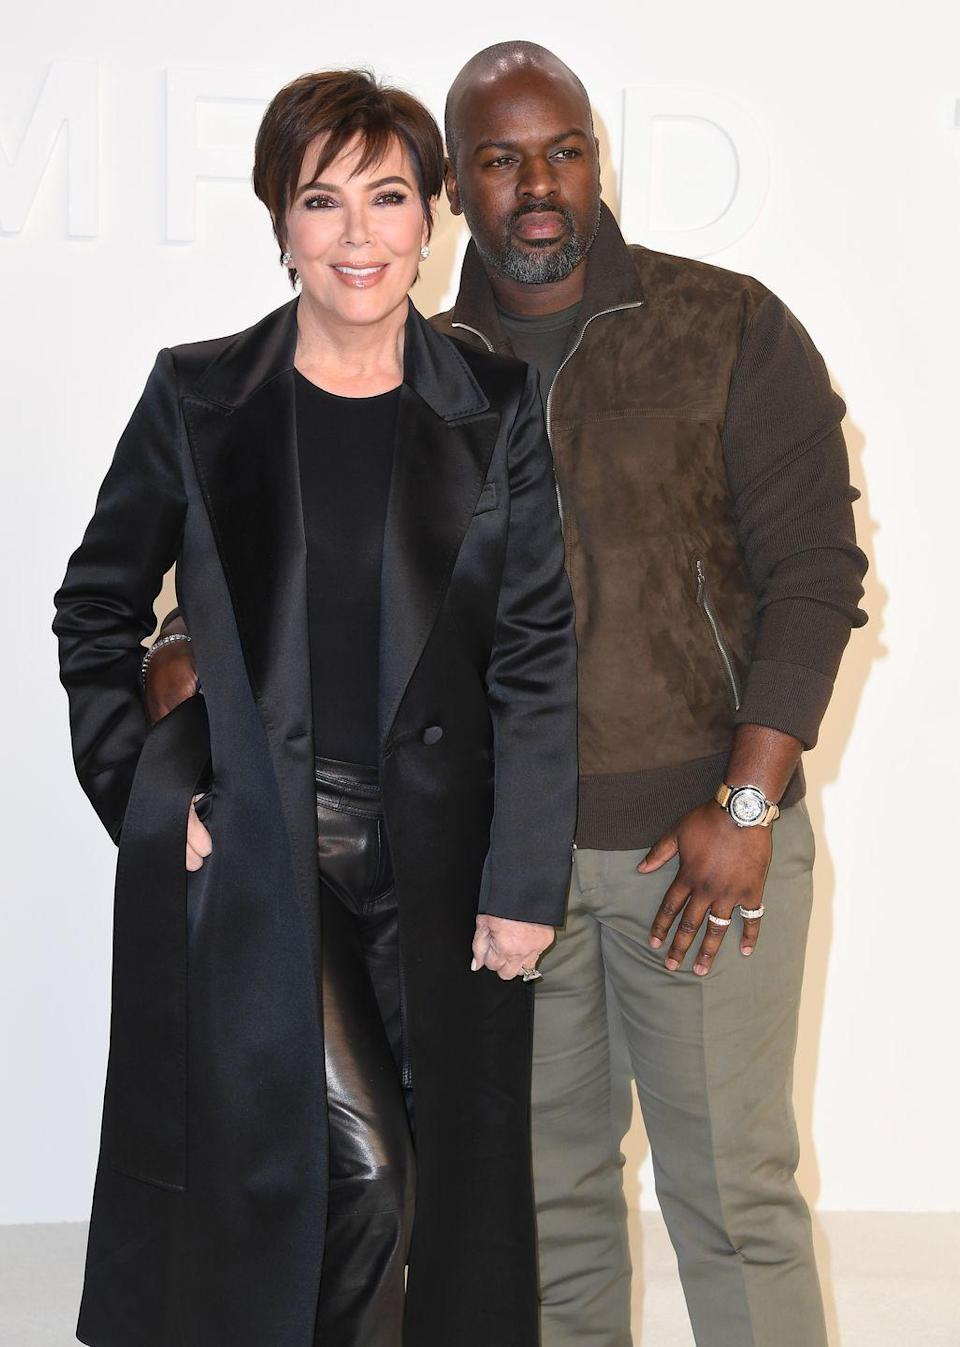 <p><strong>Age gap:</strong> 25 years</p><p>Kris, 64, and Corey, 39, have been dating since roughly 2014, after the momager split with longtime spouse Caitlyn Jenner, parent to both Kendall and Kylie. While Corey gets along with almost everyone in the Kardashian family, there's been some drama with him and Kourtney after he tried to give her parenting advice. Yikes! </p>